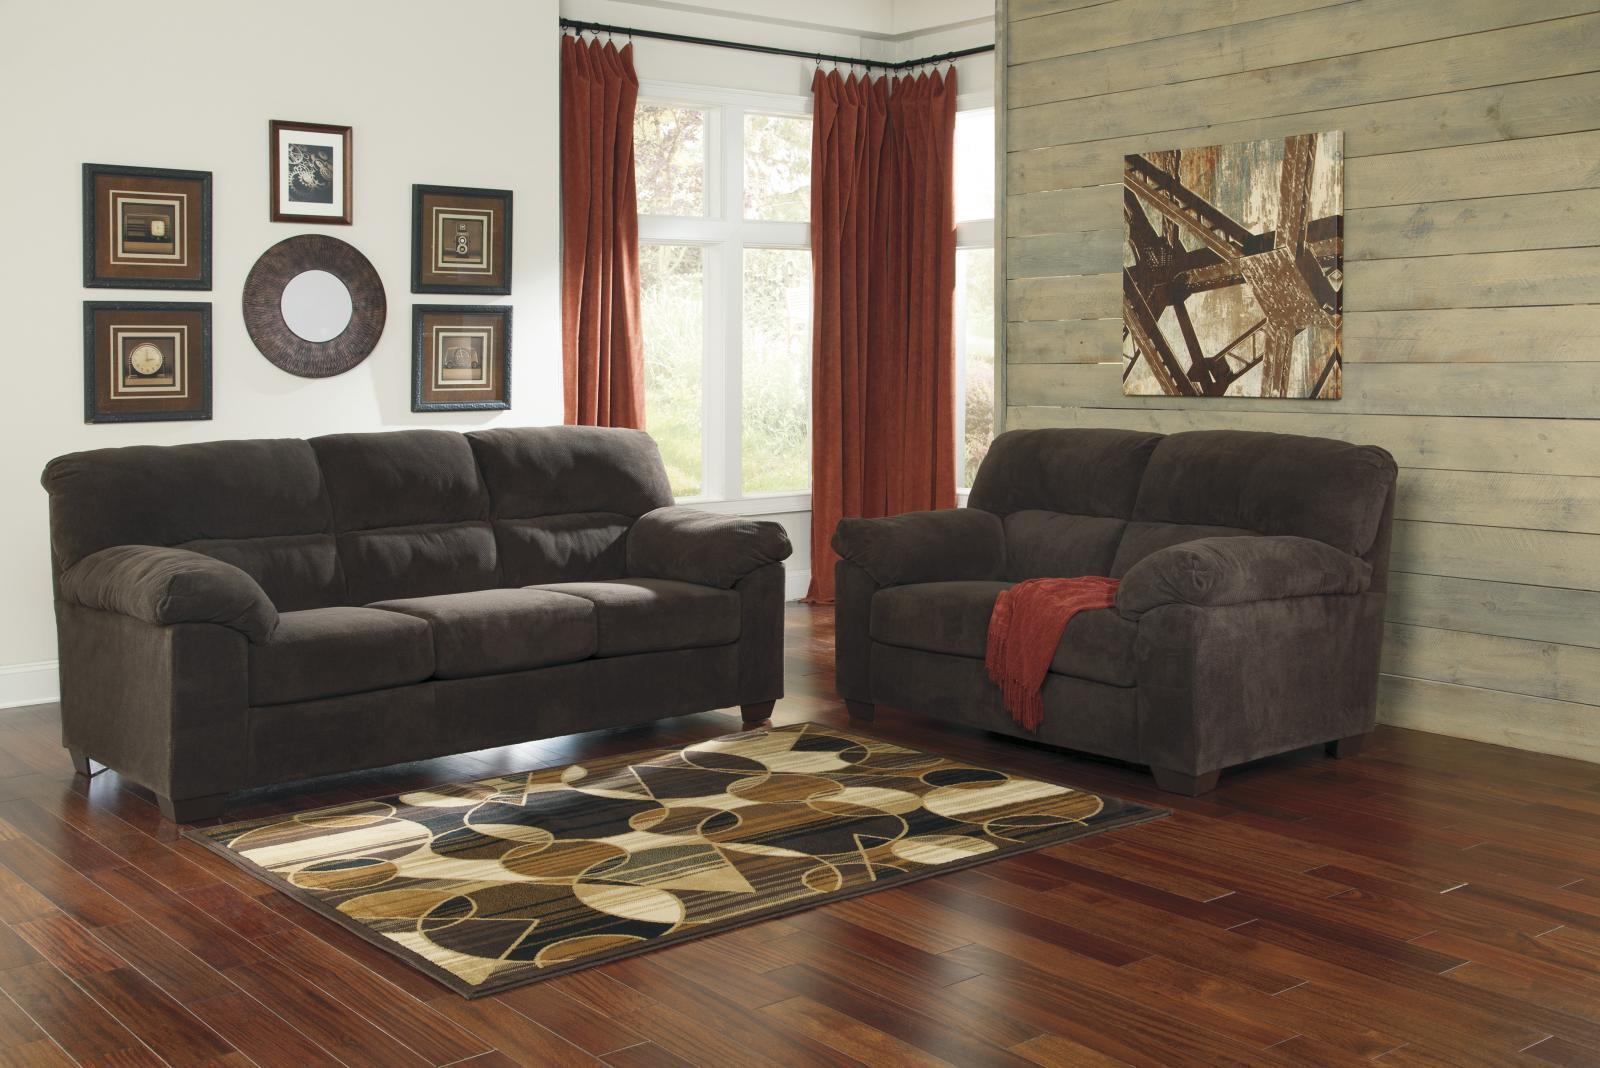 Ashley Zorah Living Room Set 2pcs in Chocolate Polyester Upholstery Contemporary